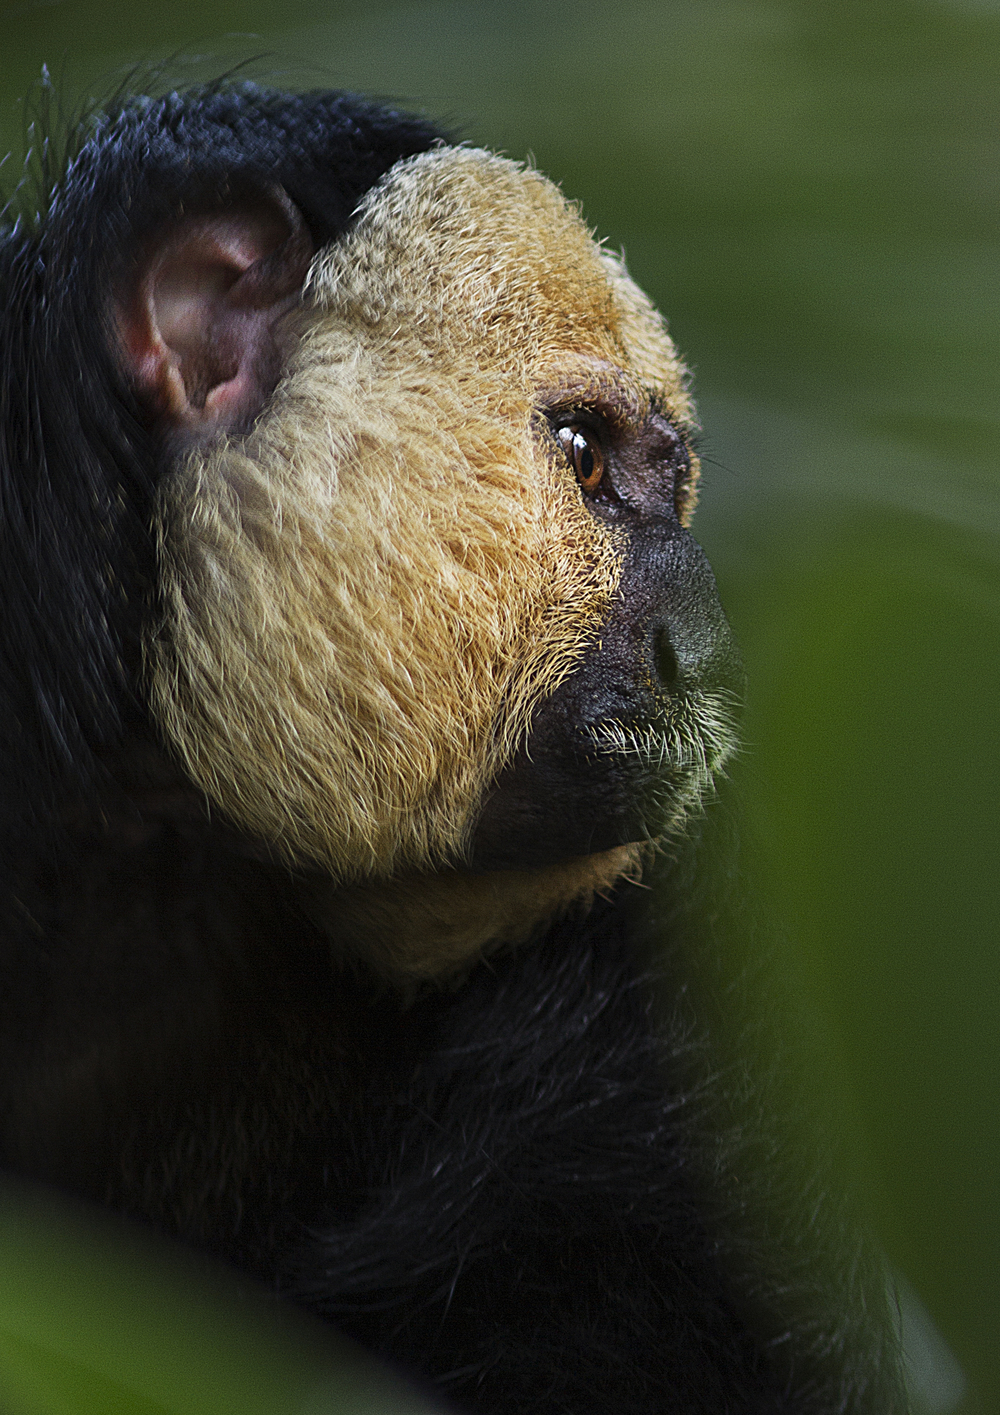 Deep thoughts Read about The white-faced saki (Pithecia pithecia) Comments